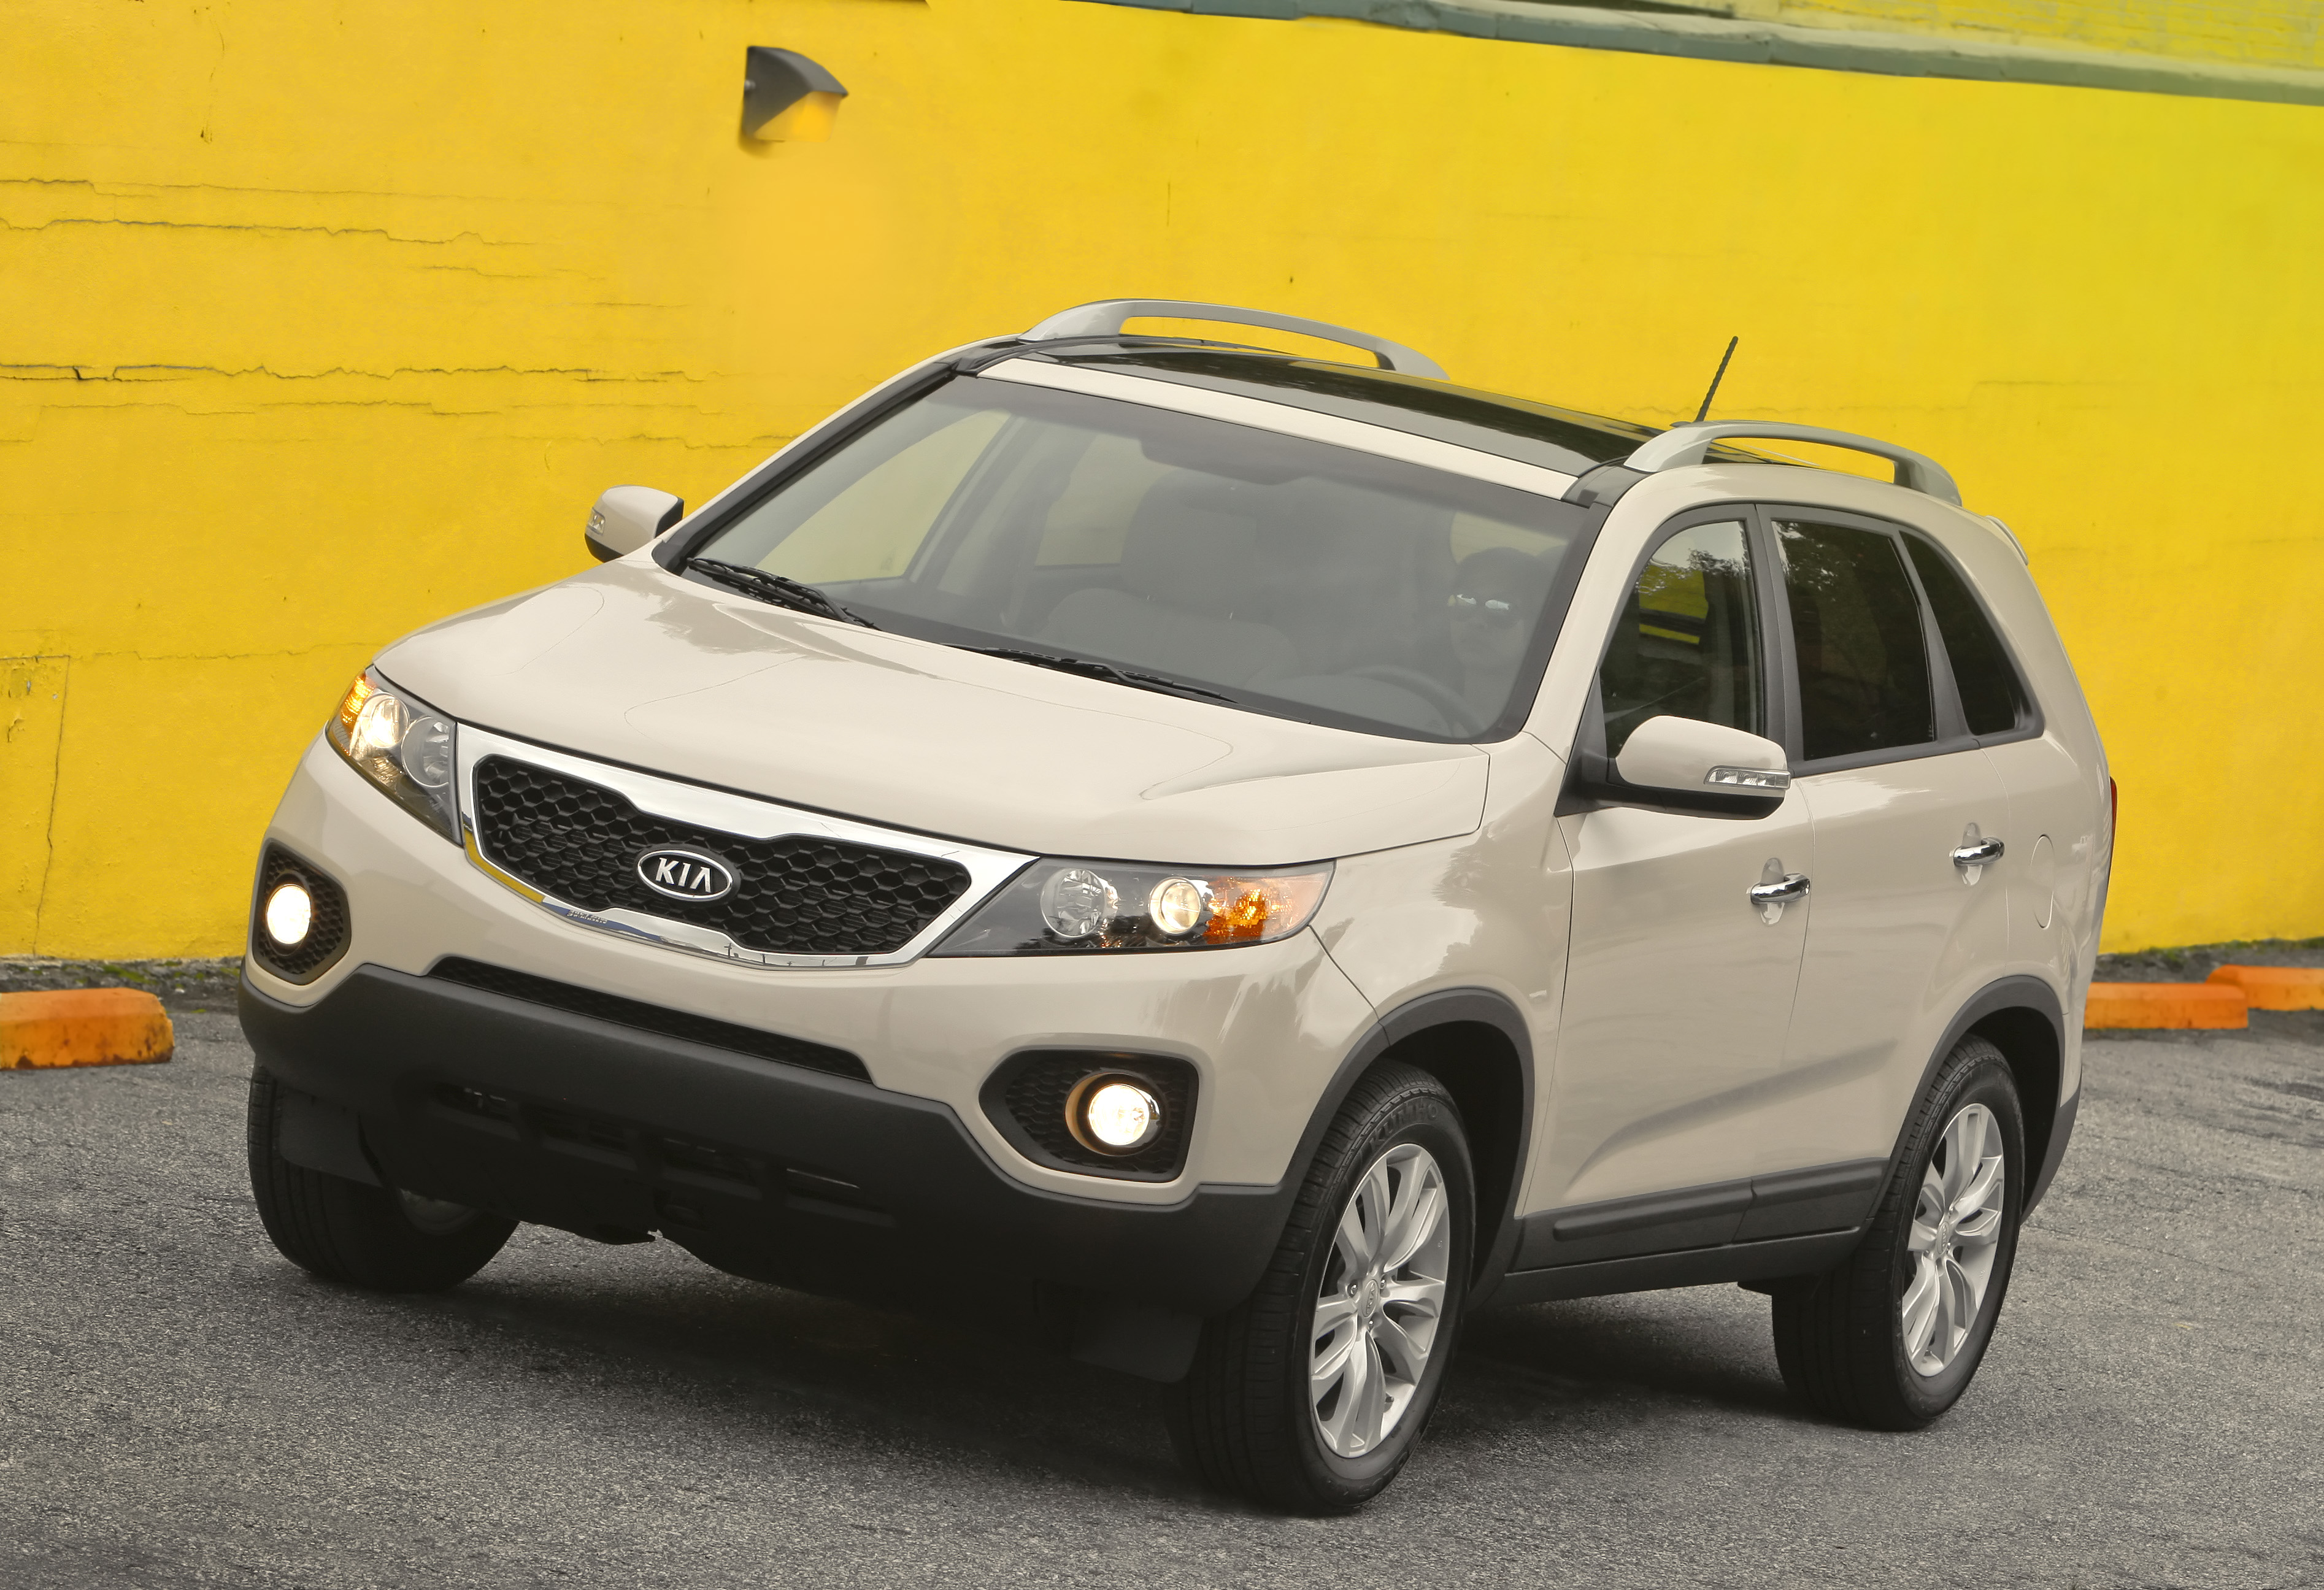 Kia Sportage Trailer Wiring Harness Sorento Likewise 2011 Images Gallery News